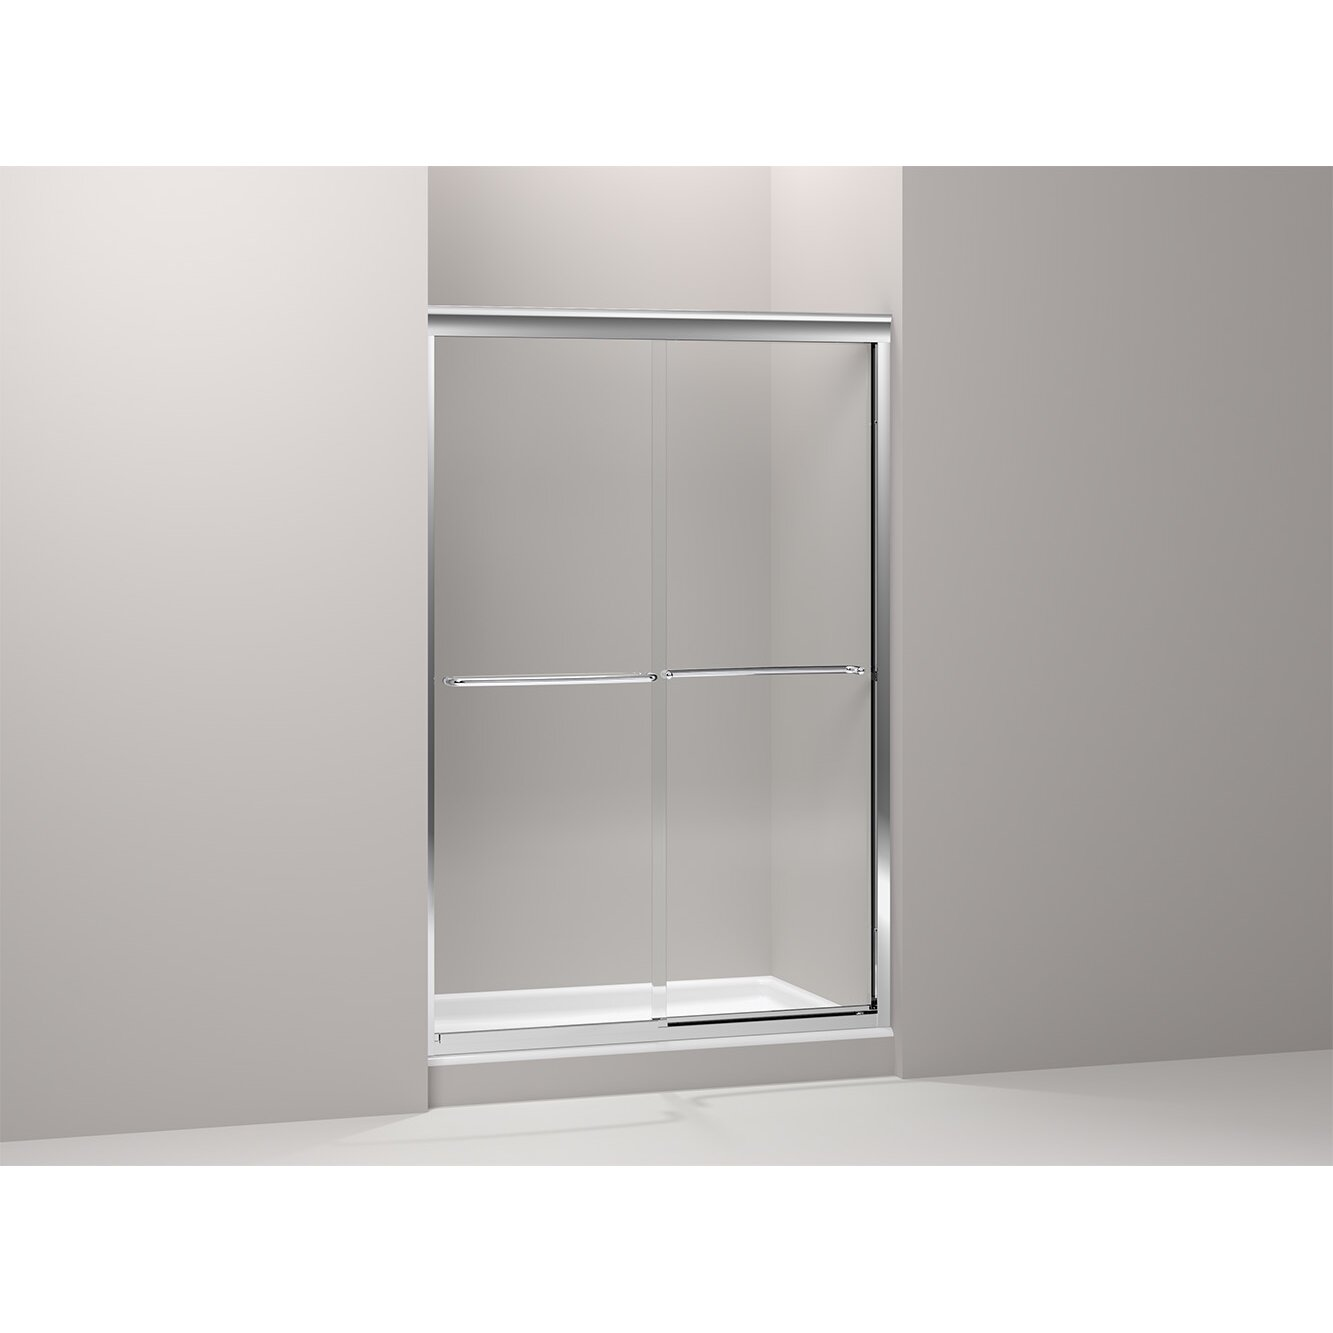 70 Inch Sliding Glass Door Womenofpower